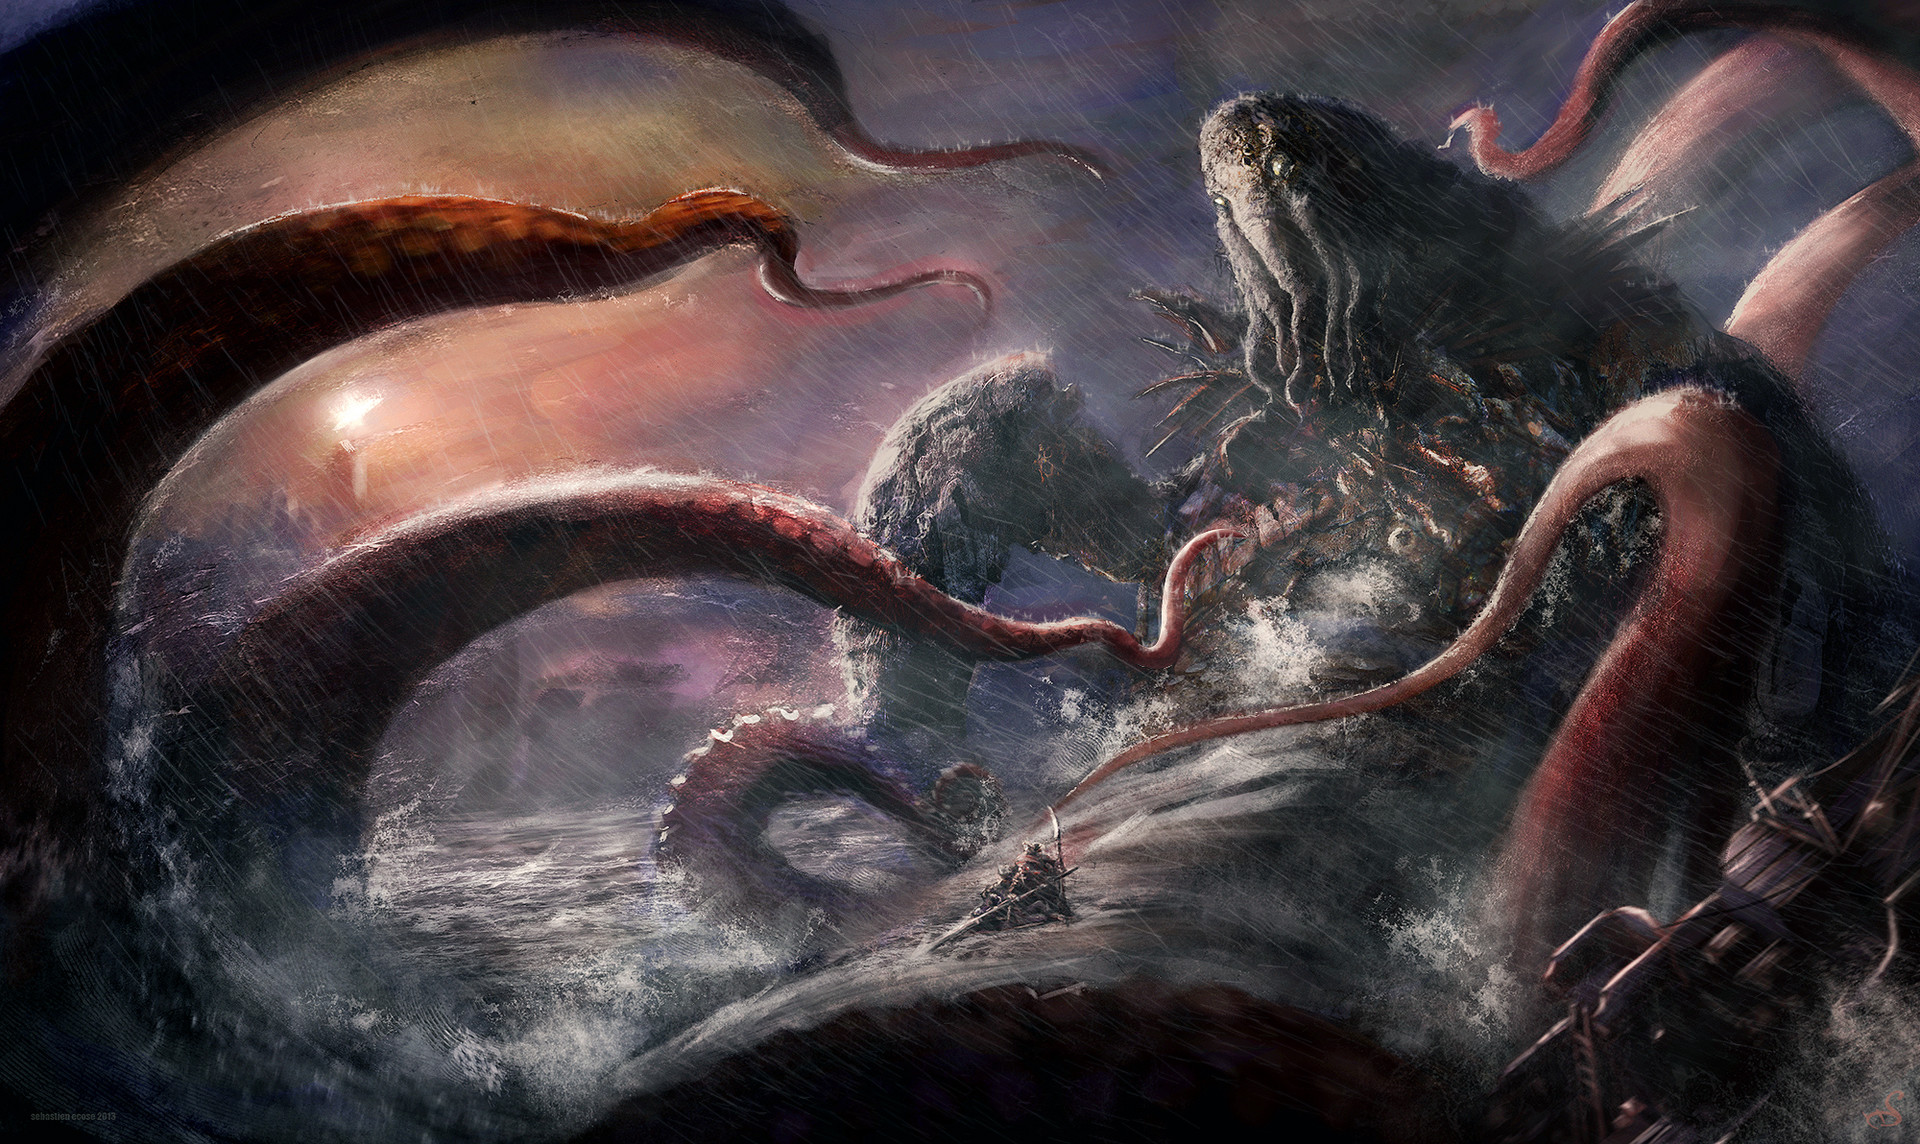 Sebastien ecosse cthulhu lovecraft ship lighthouse sink monster god ancient illustration sebastien ecosse retouched 3